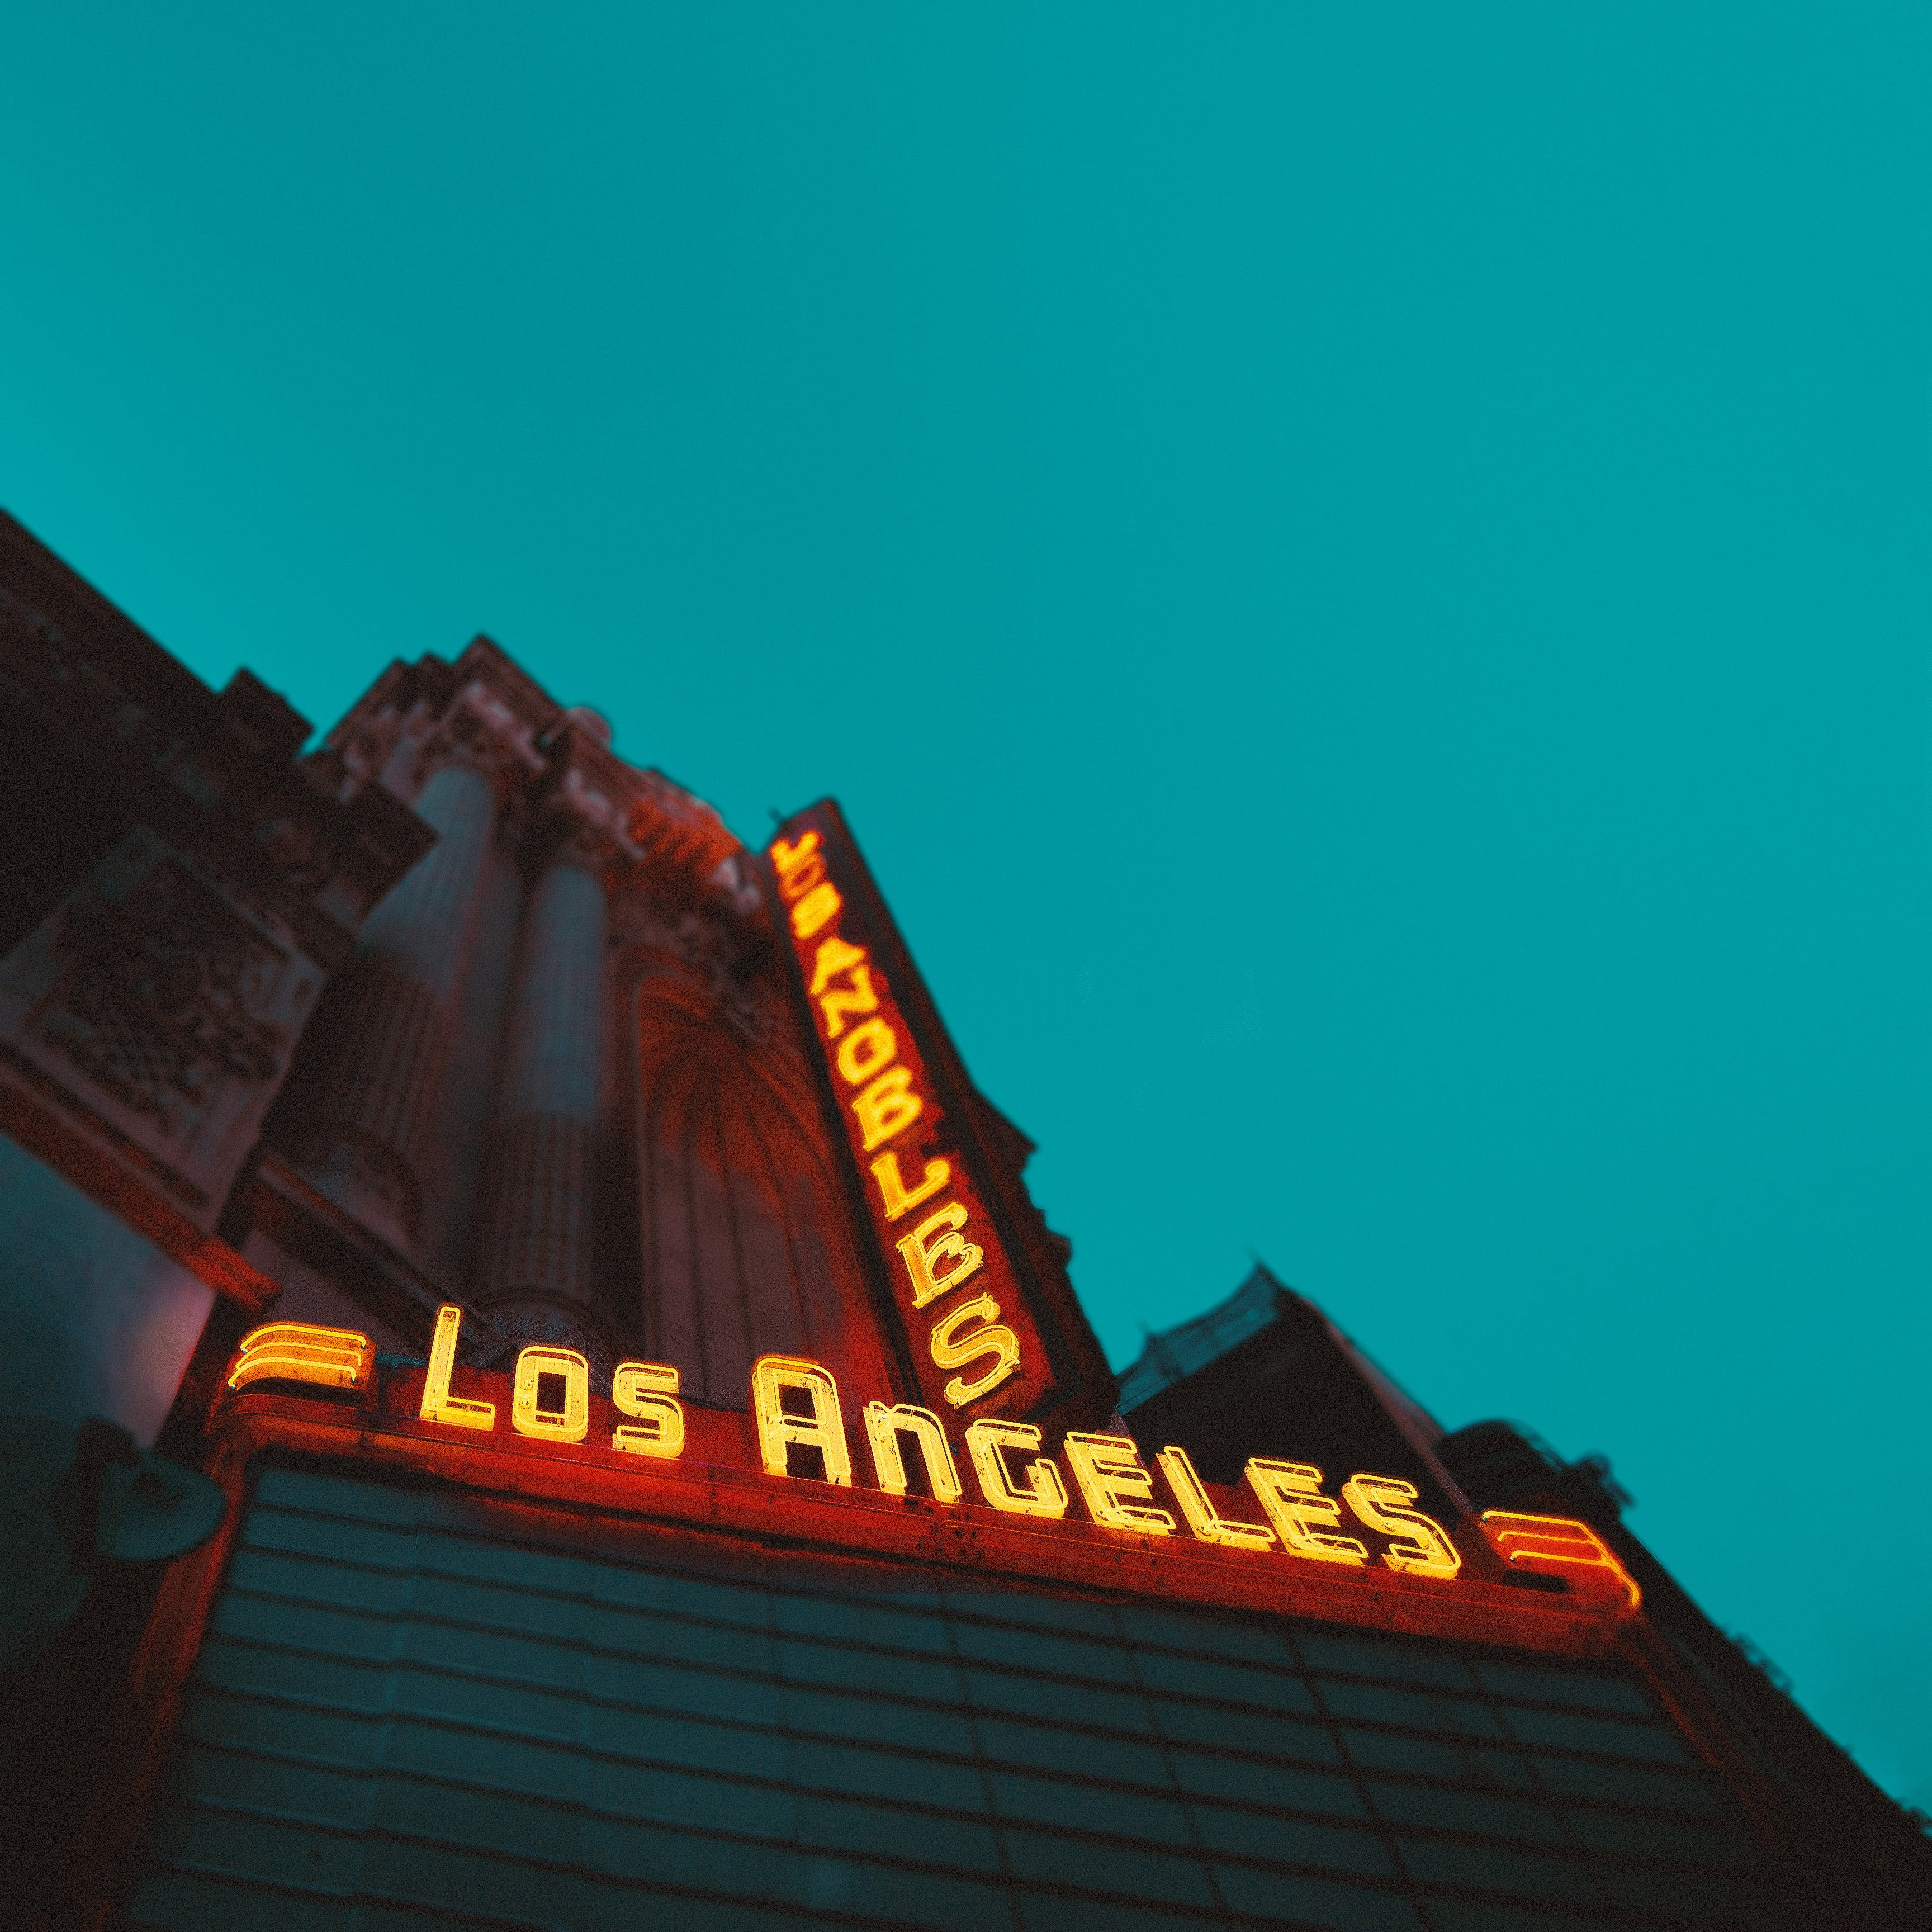 Low Angle Photography of Brown Building With Los Angeles Led Sign